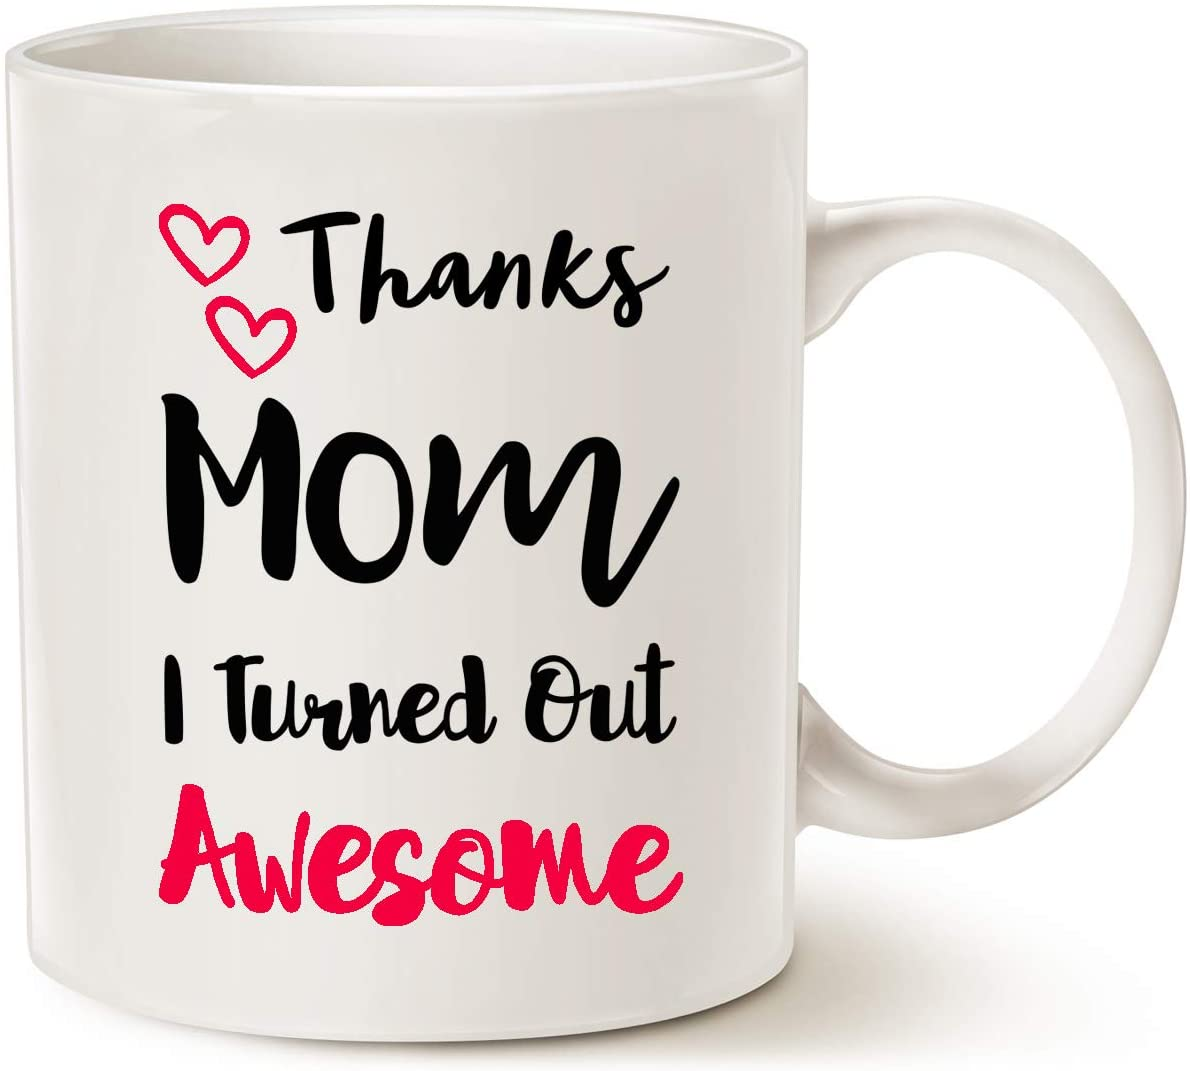 Mothers Day Gifts Funny Mom Mug From Daughter Son Thanks Mom I Turned Out Awesome Coffee Mug For Mother Her Women White 11 Oz Walmart Com Walmart Com